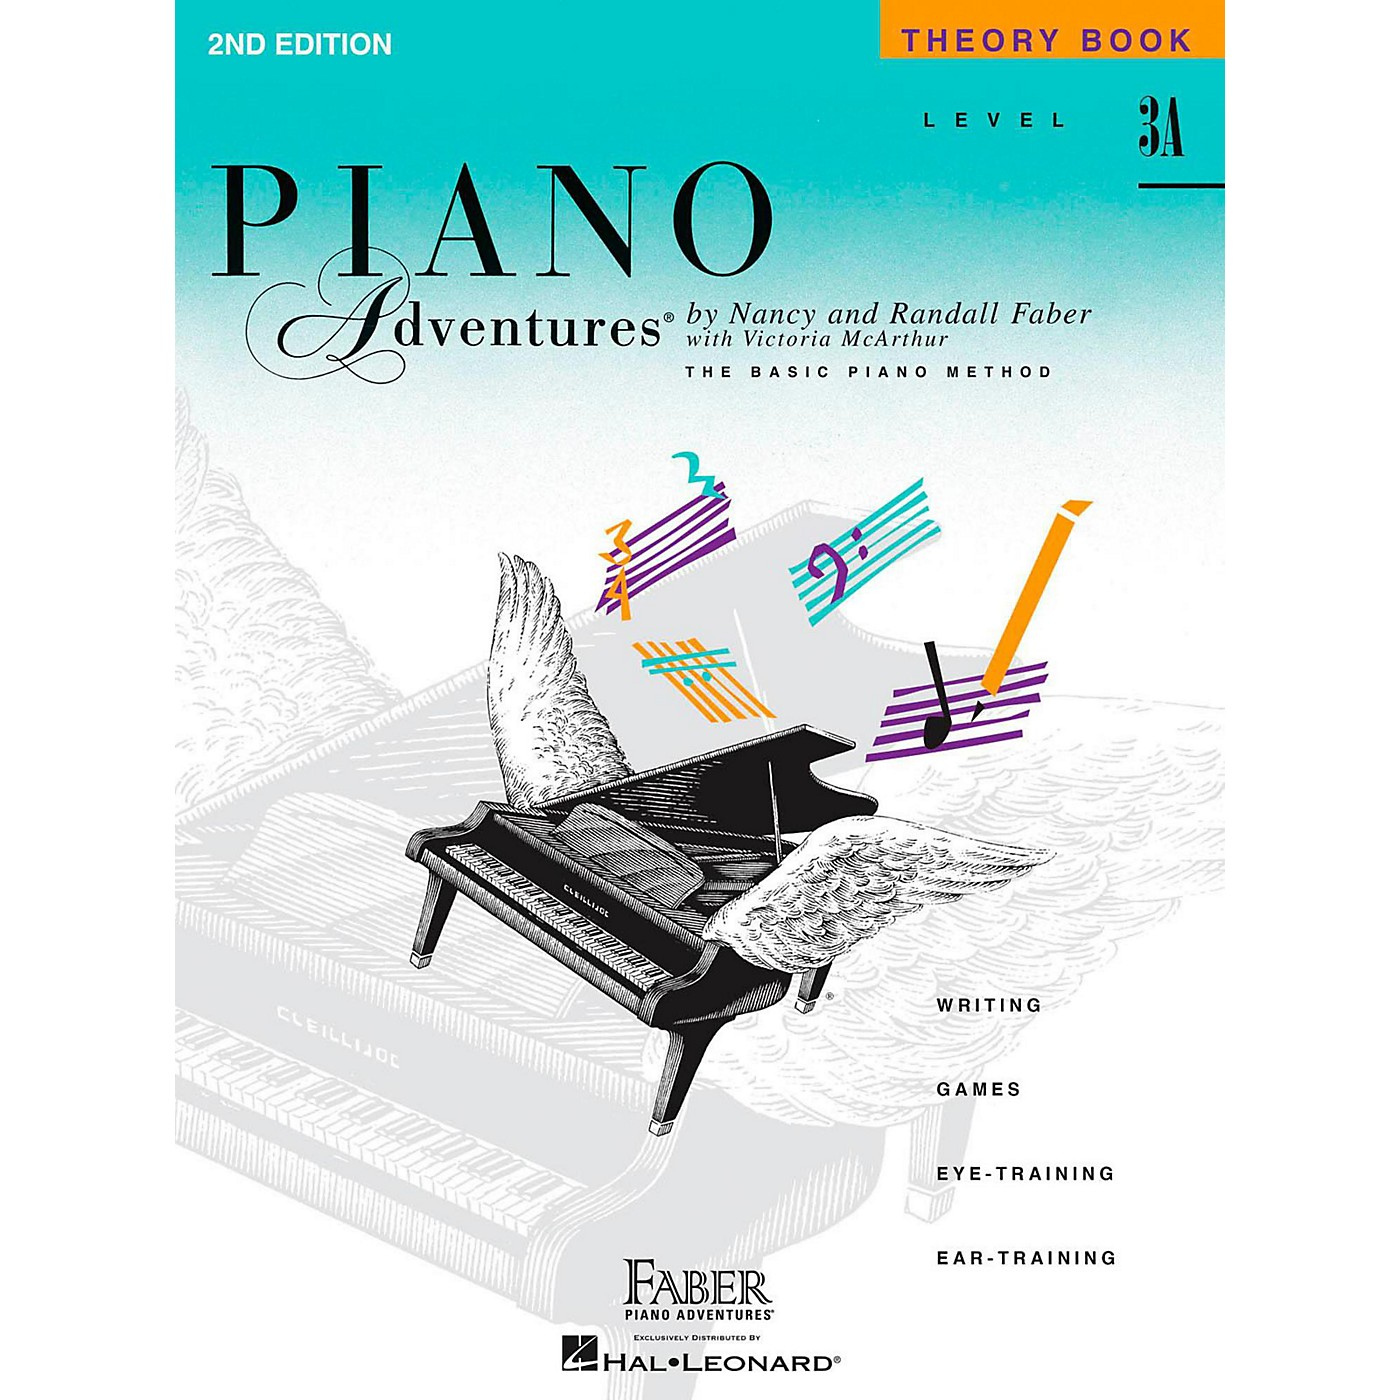 Faber Piano Adventures Piano Adventures Theory Book Level 3A thumbnail